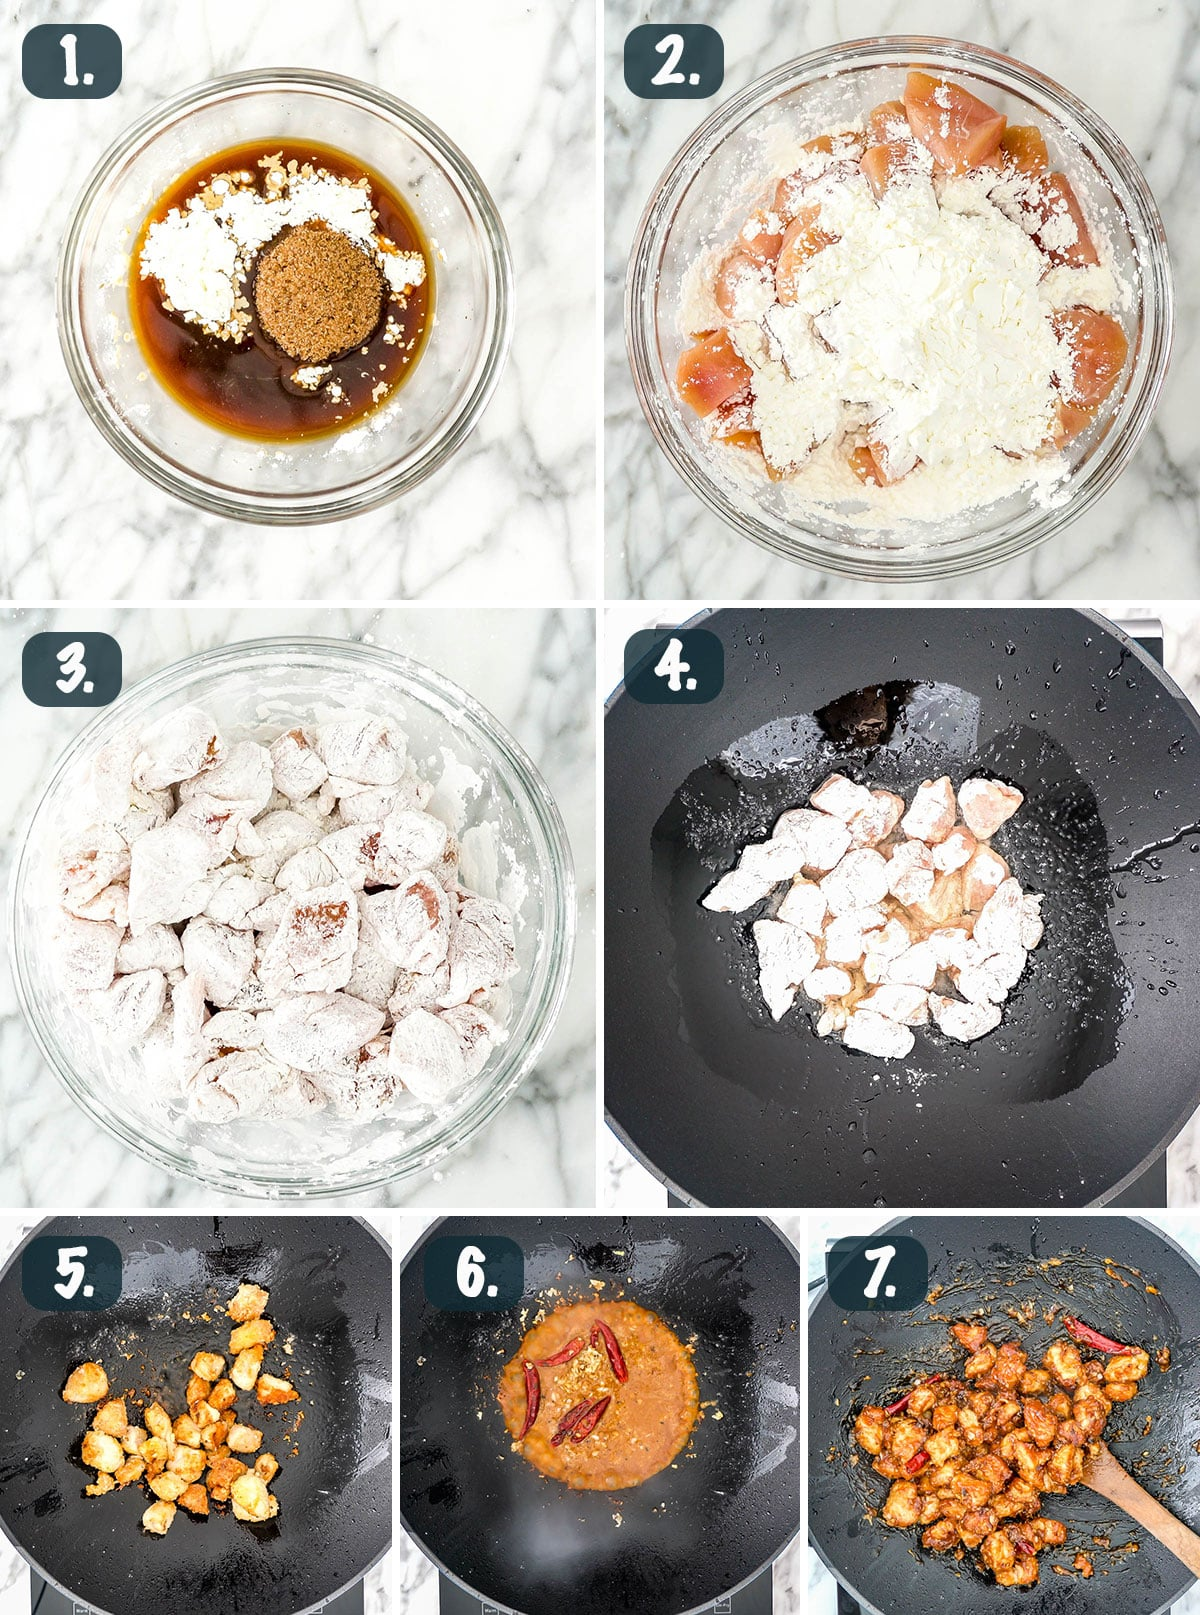 process shots showing how to make mongolian chicken